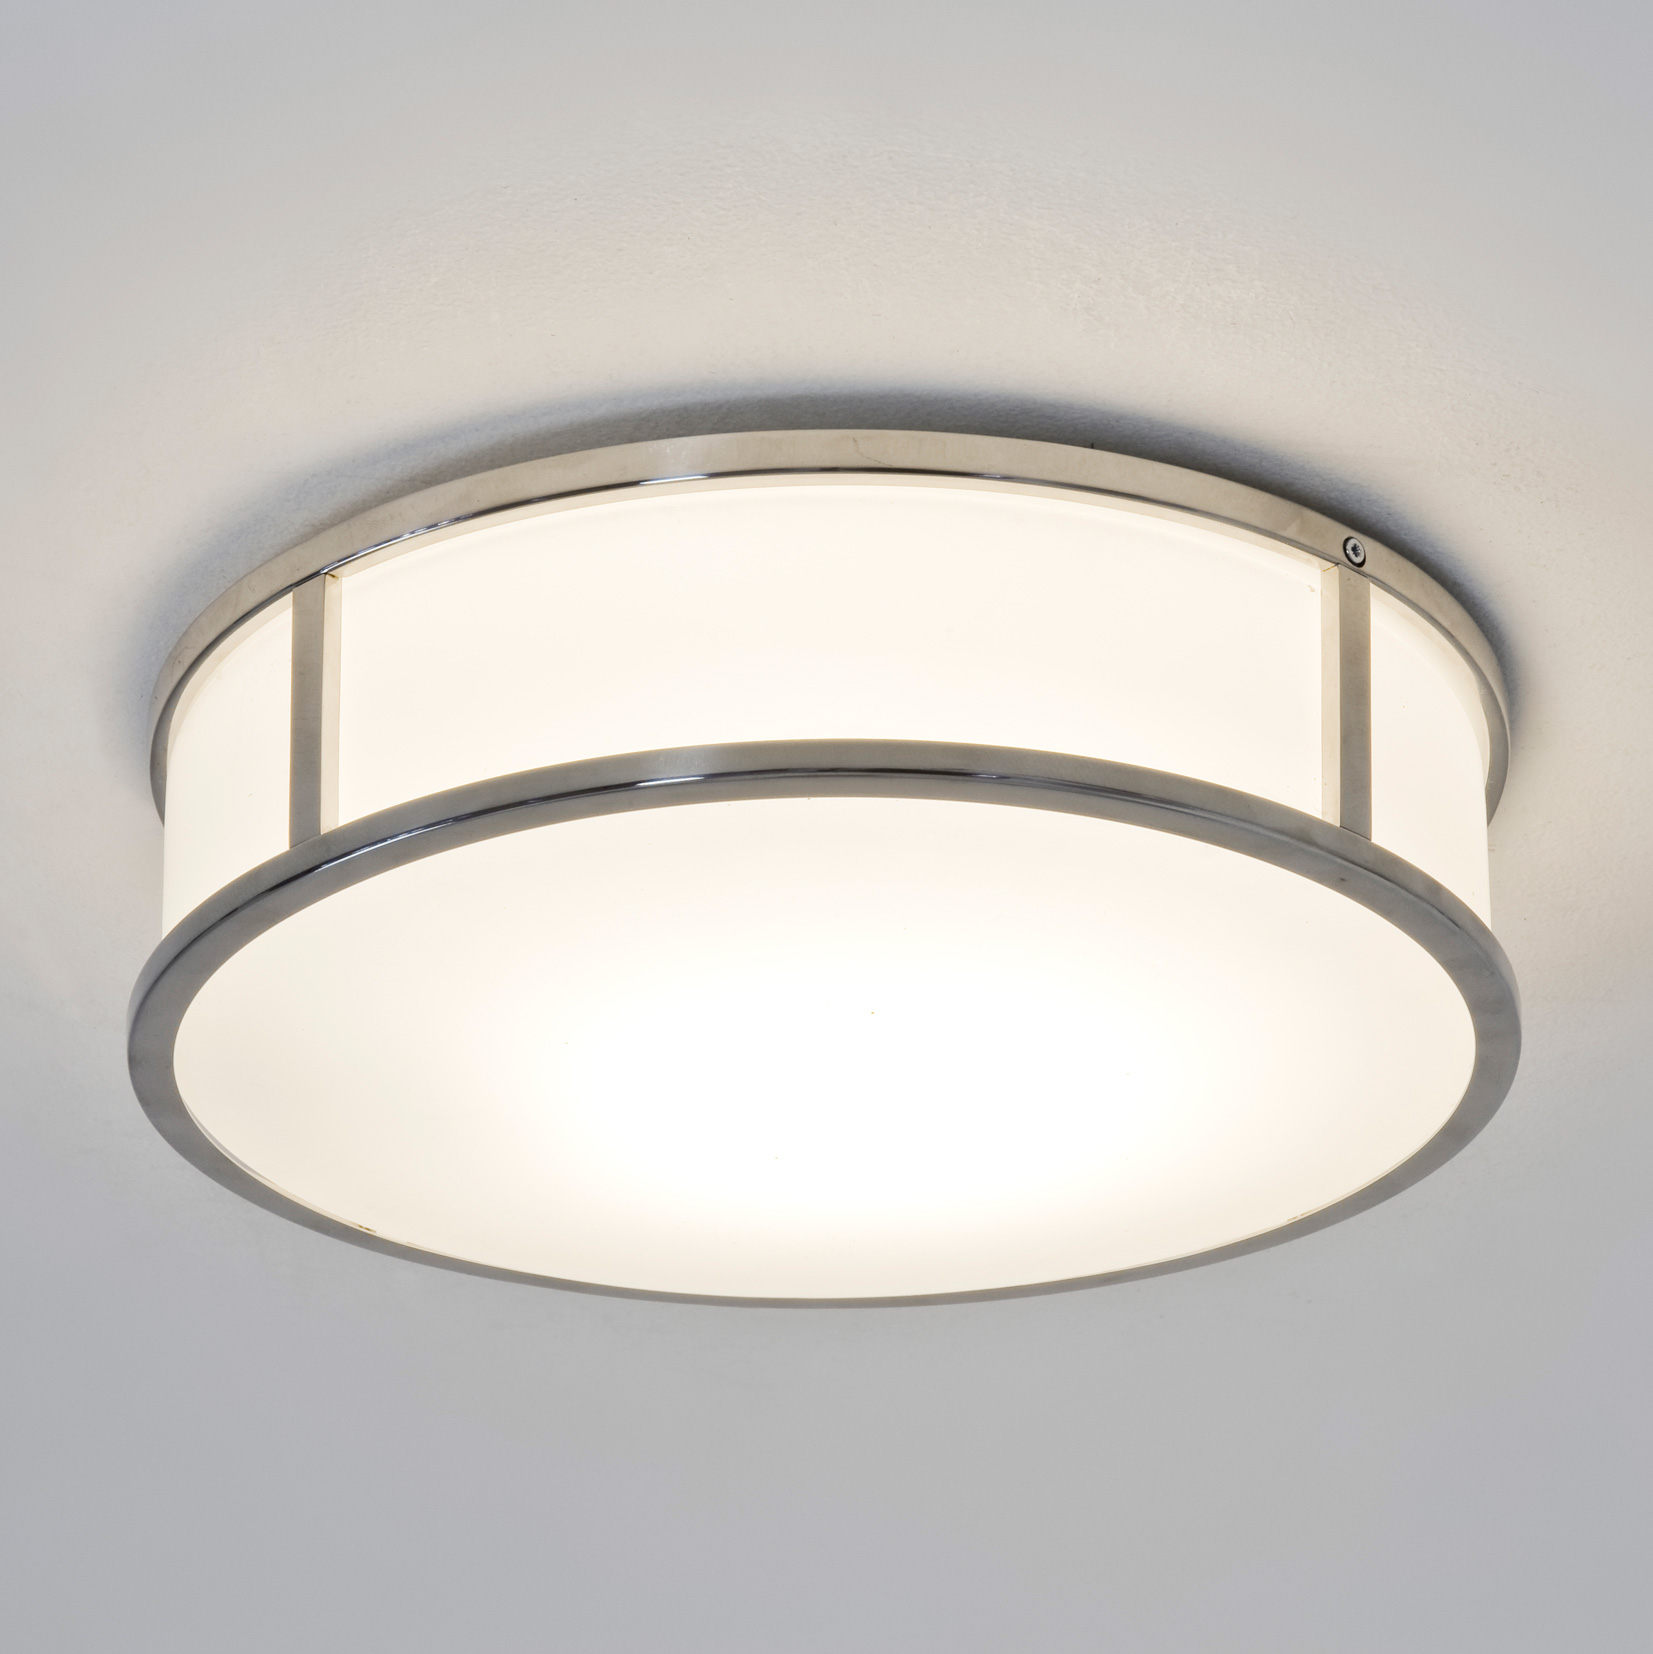 Pendant Light Suitable For Bathroom : Astro mashiko round bathroom ceiling light polished chrome